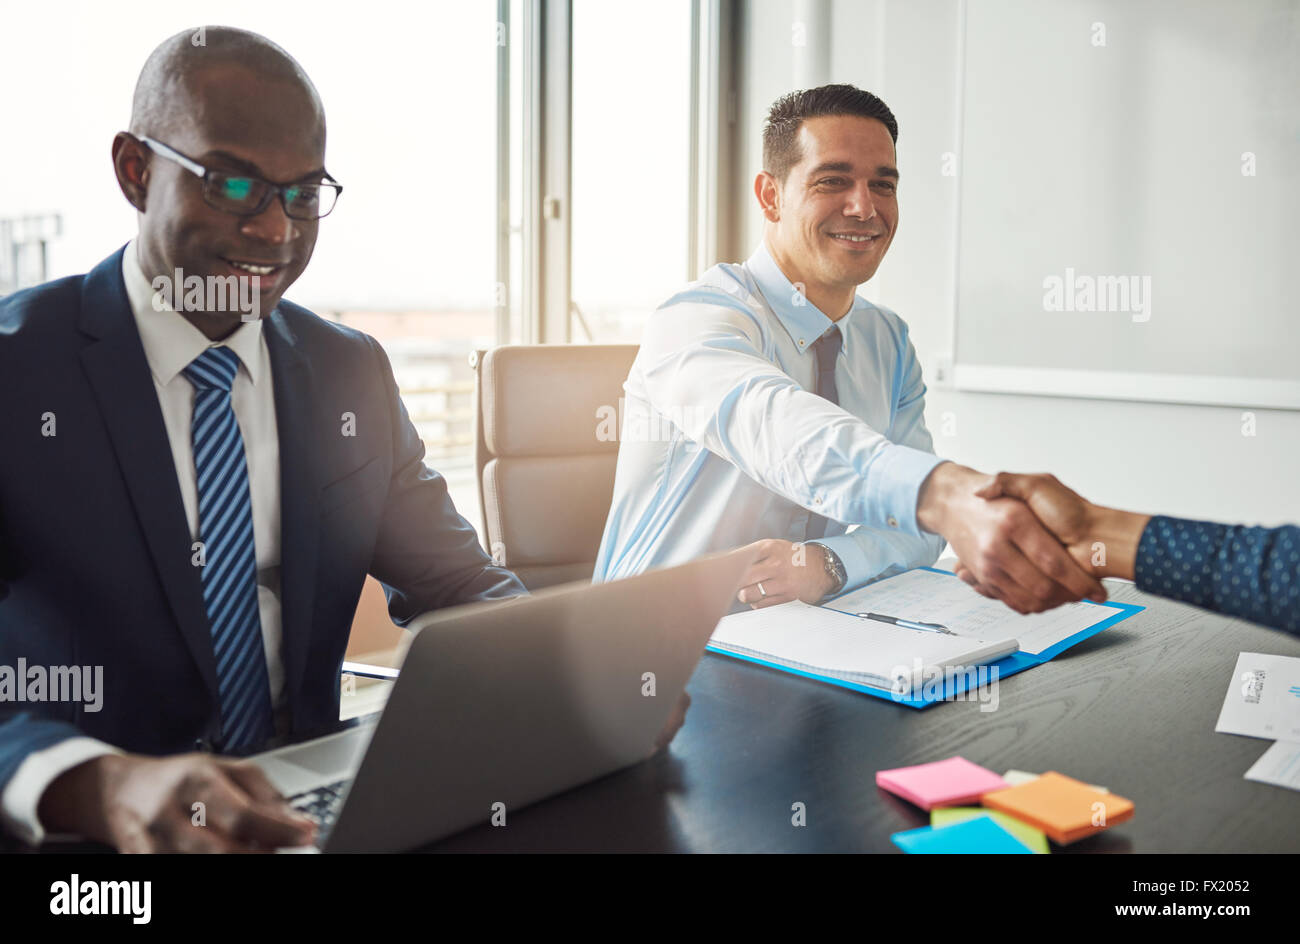 Smiling young Hispanic business man and woman shaking hands across a table in the office watched by a smiling African - Stock Image